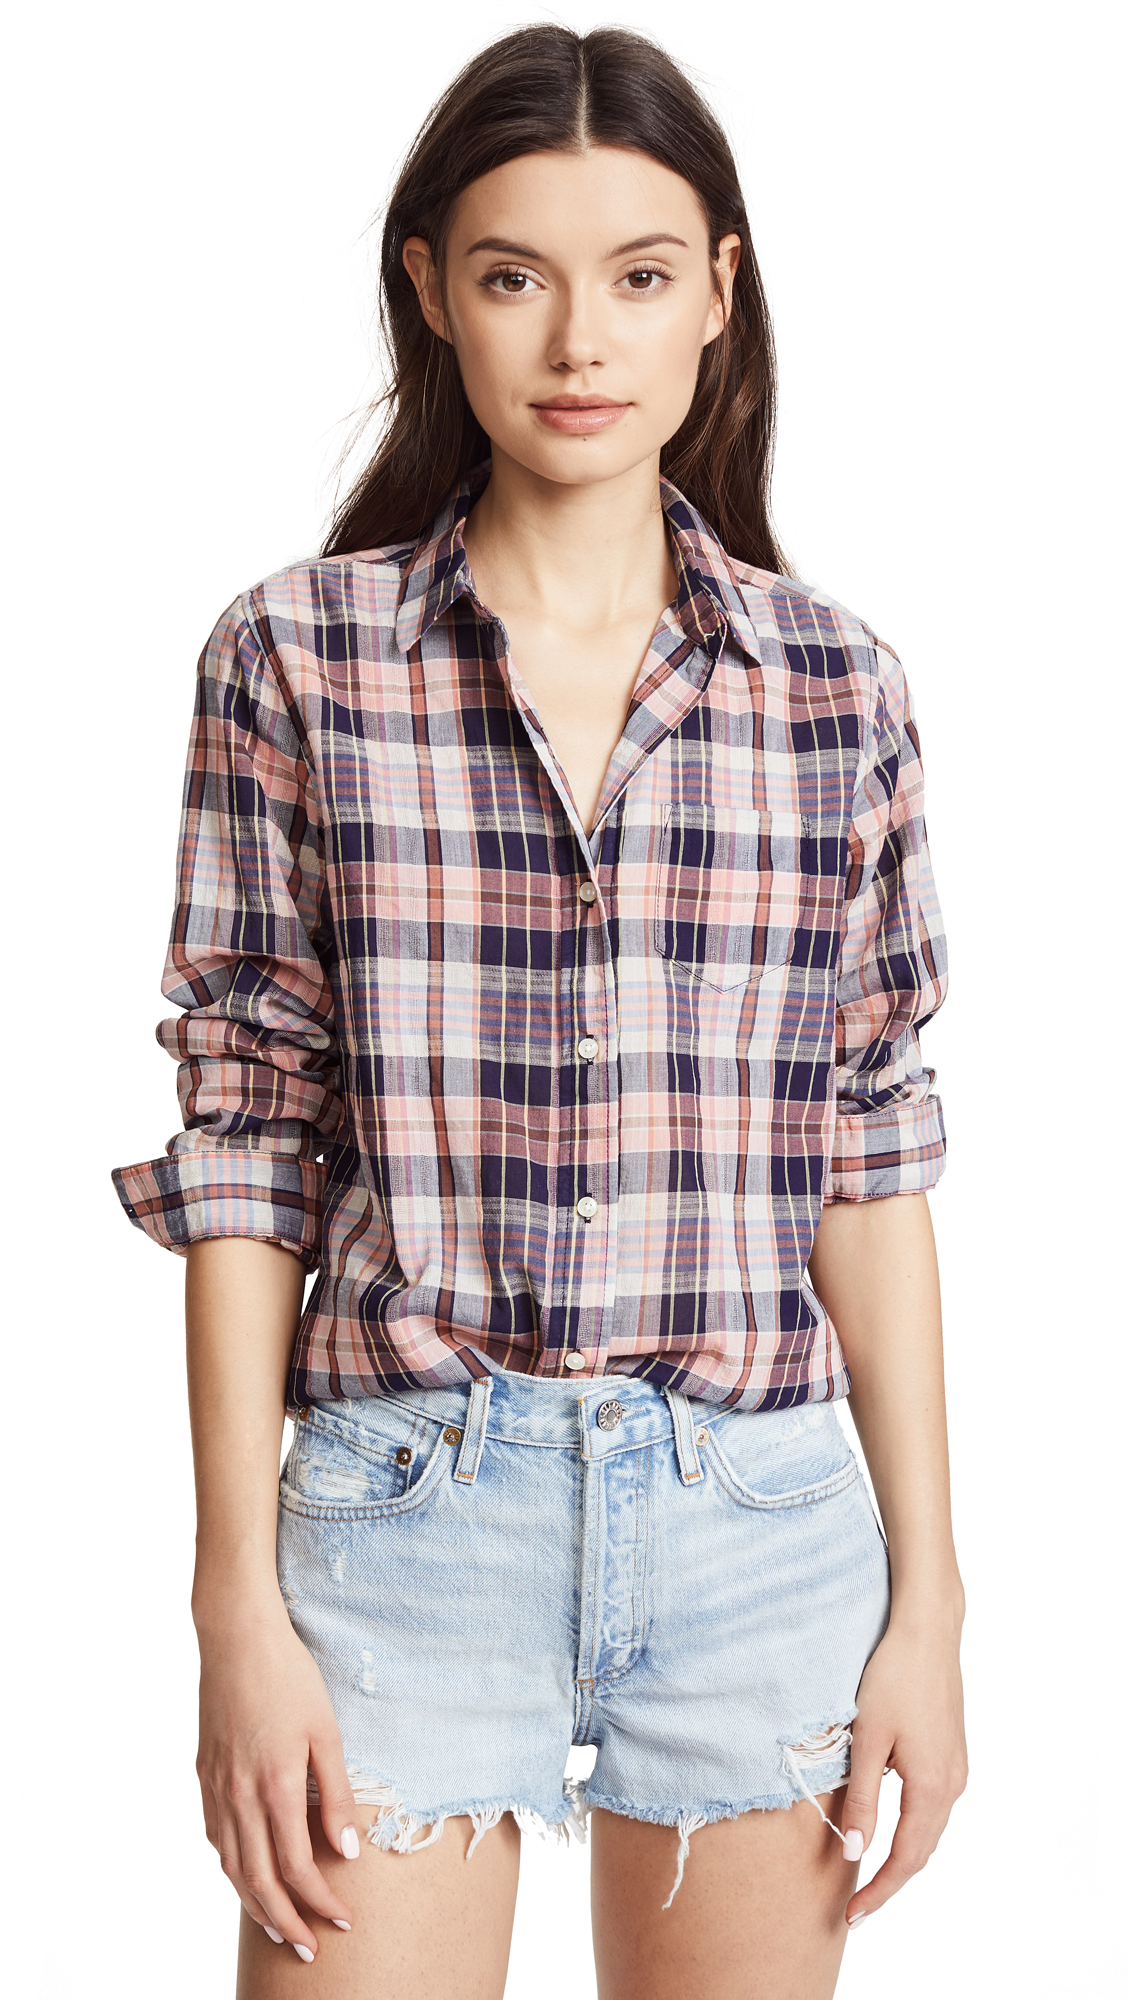 BIRDS OF PARADIS Grace Classic Shirt in Pink/Navy Plaid